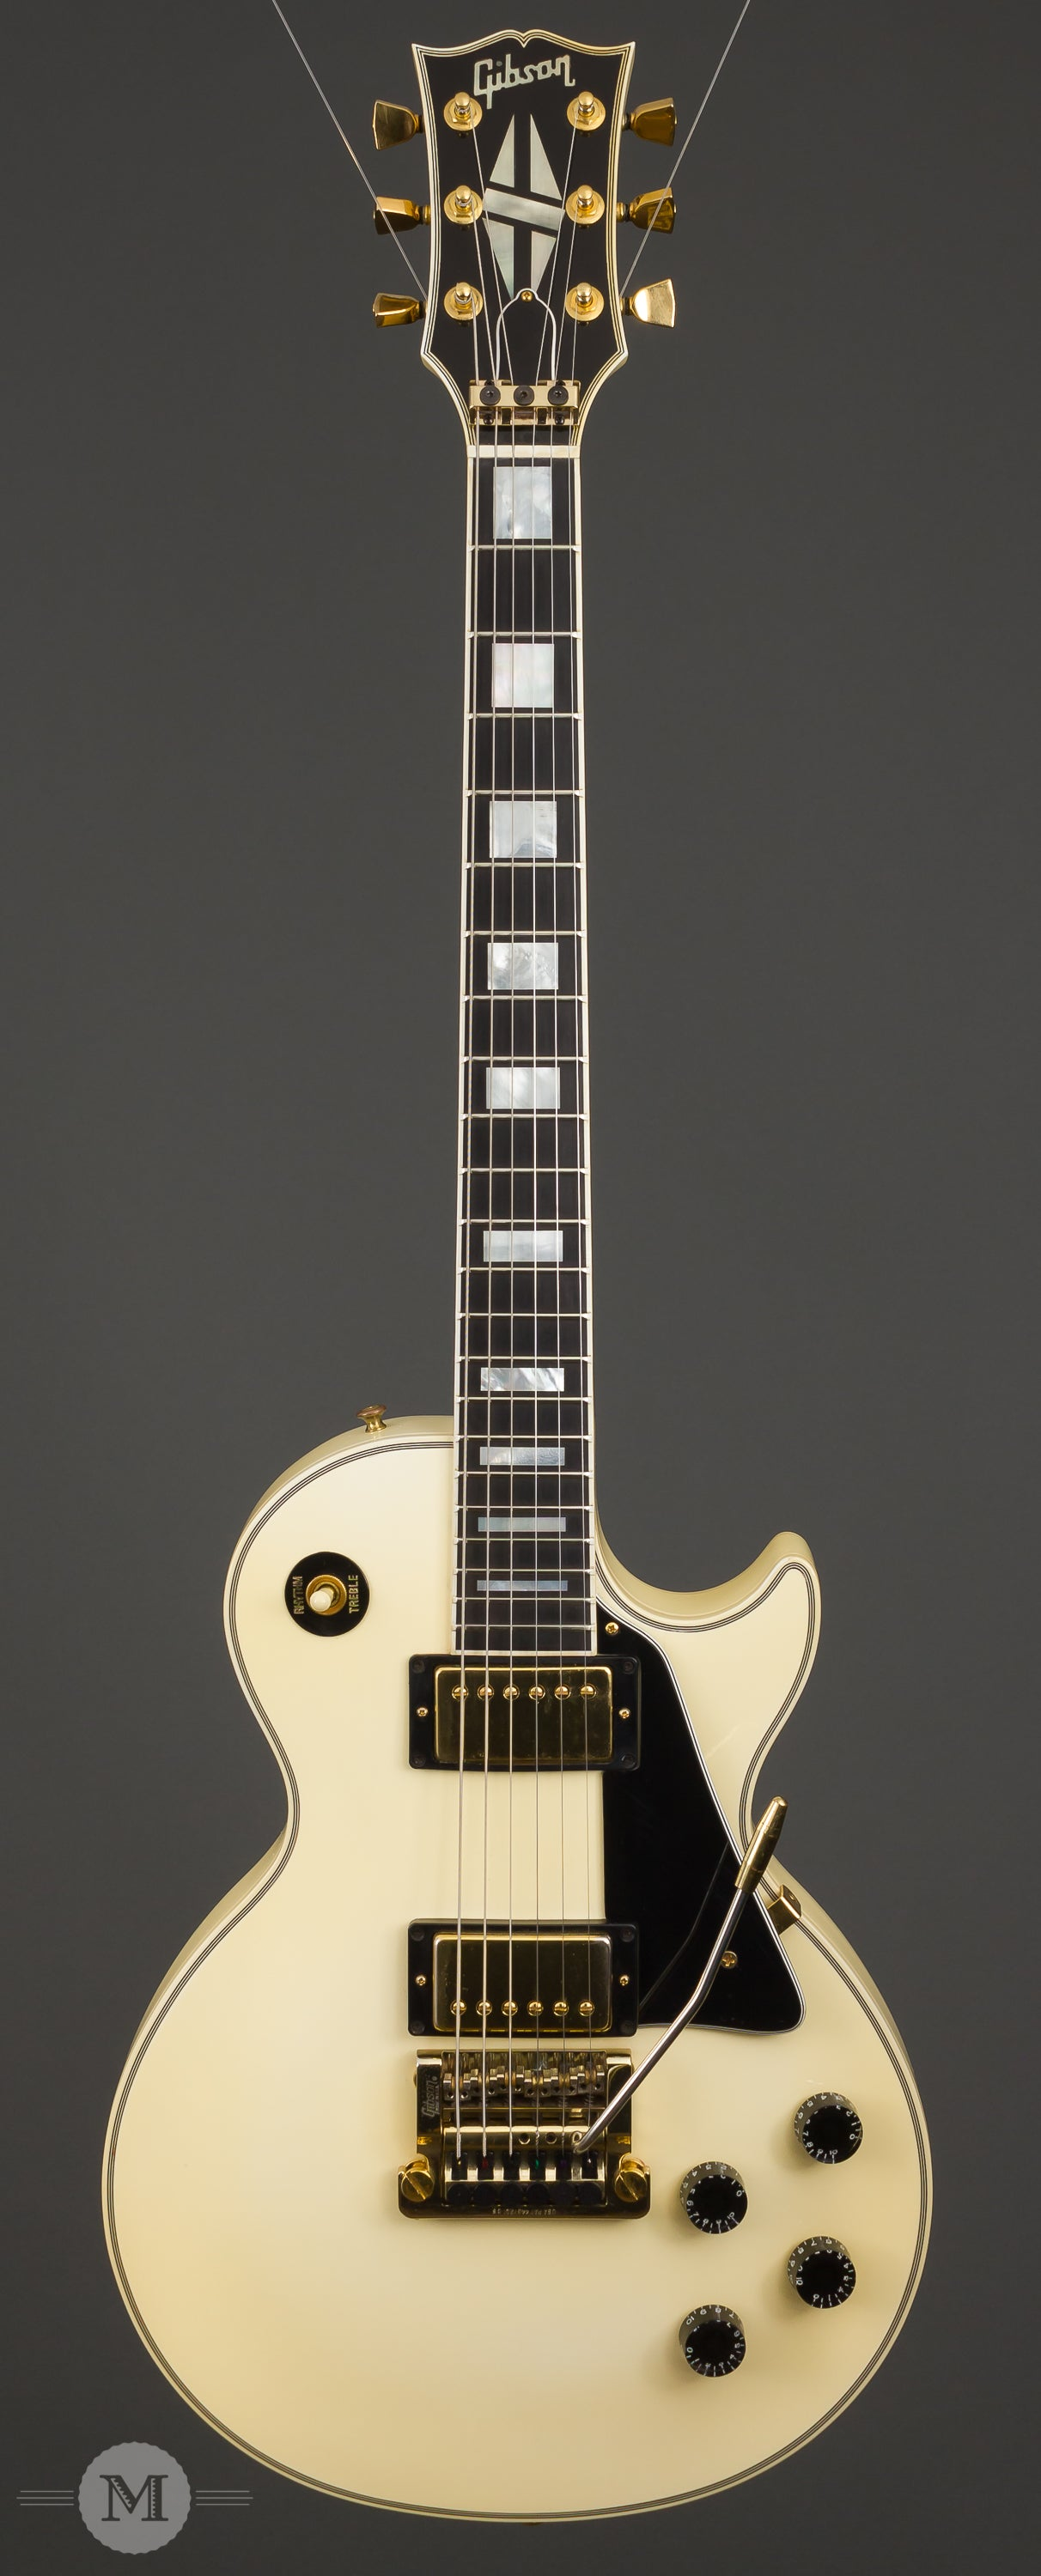 gibson guitars 1988 les paul custom alpine white with. Black Bedroom Furniture Sets. Home Design Ideas